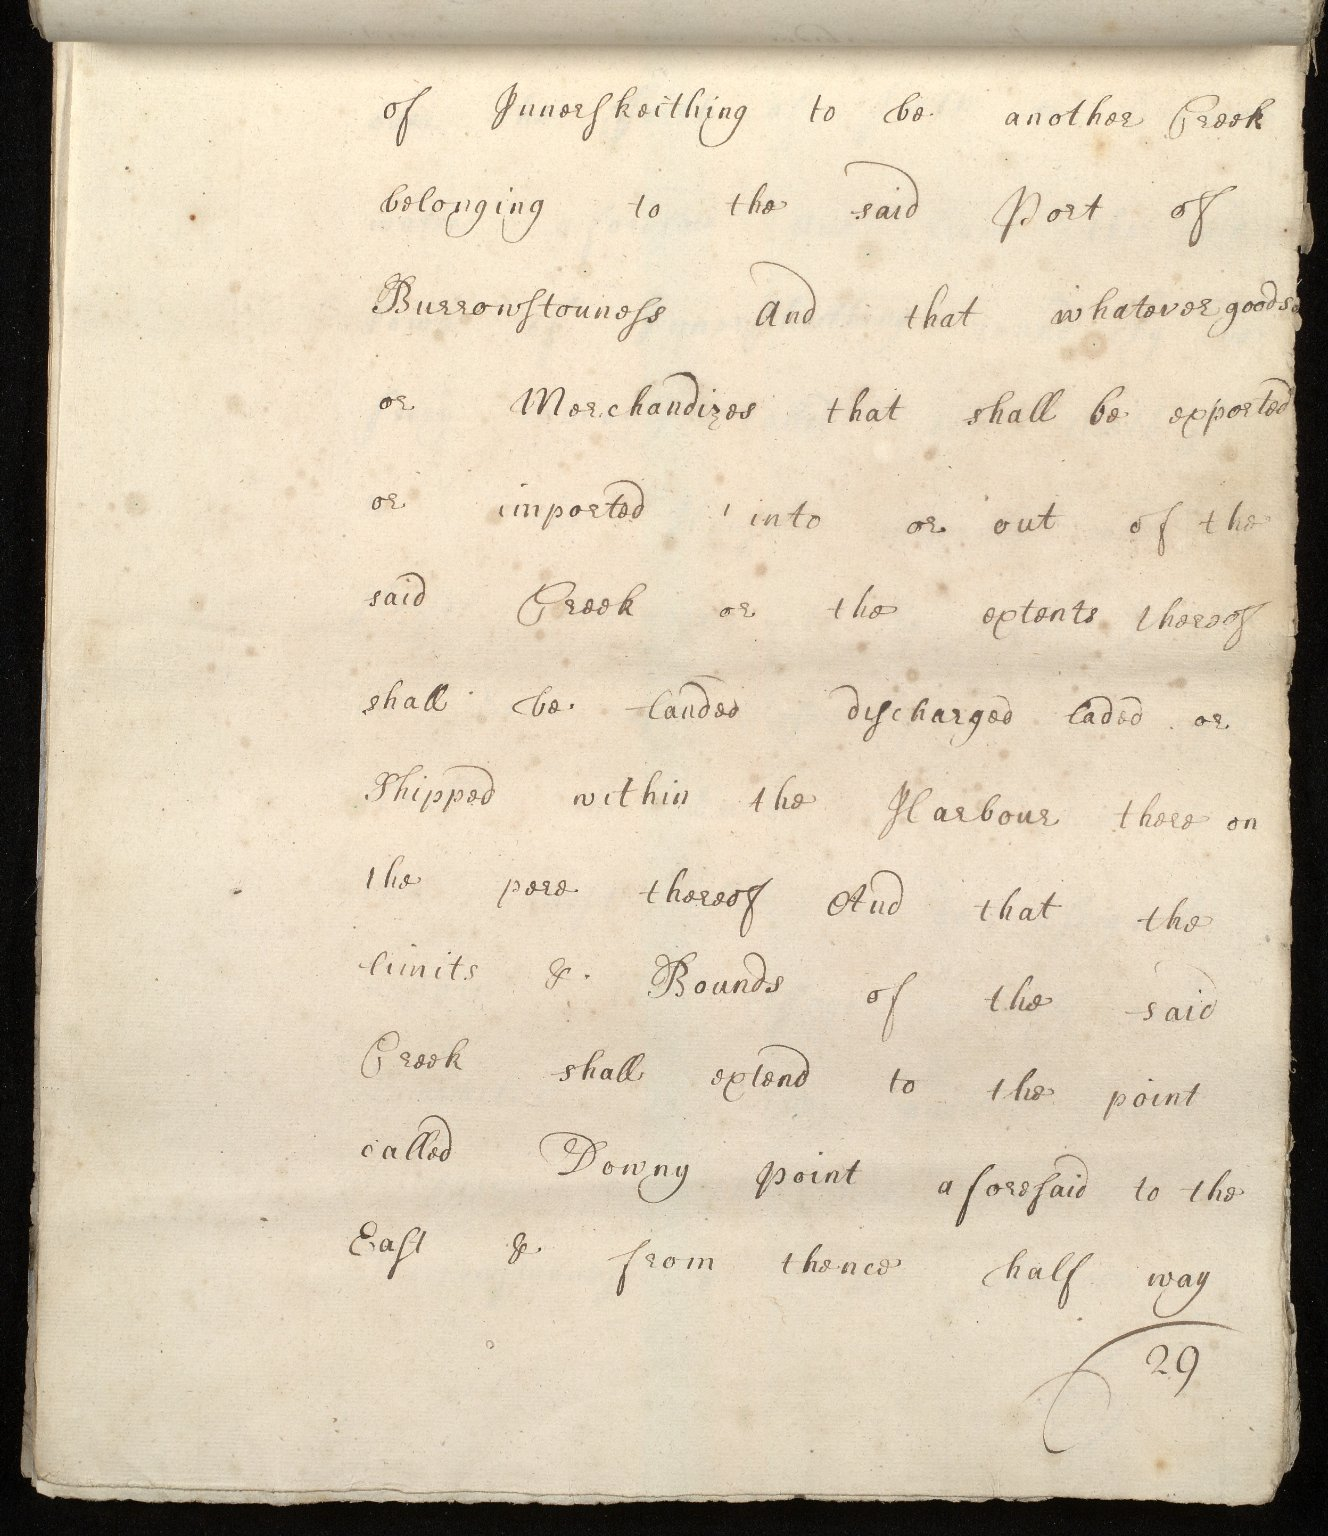 [Commission by Queen Anne to John Adair and others to appoint the town of Borrowstounness (Bo'ness) to be a port and to fix the bounds thereof] [29 of 39]